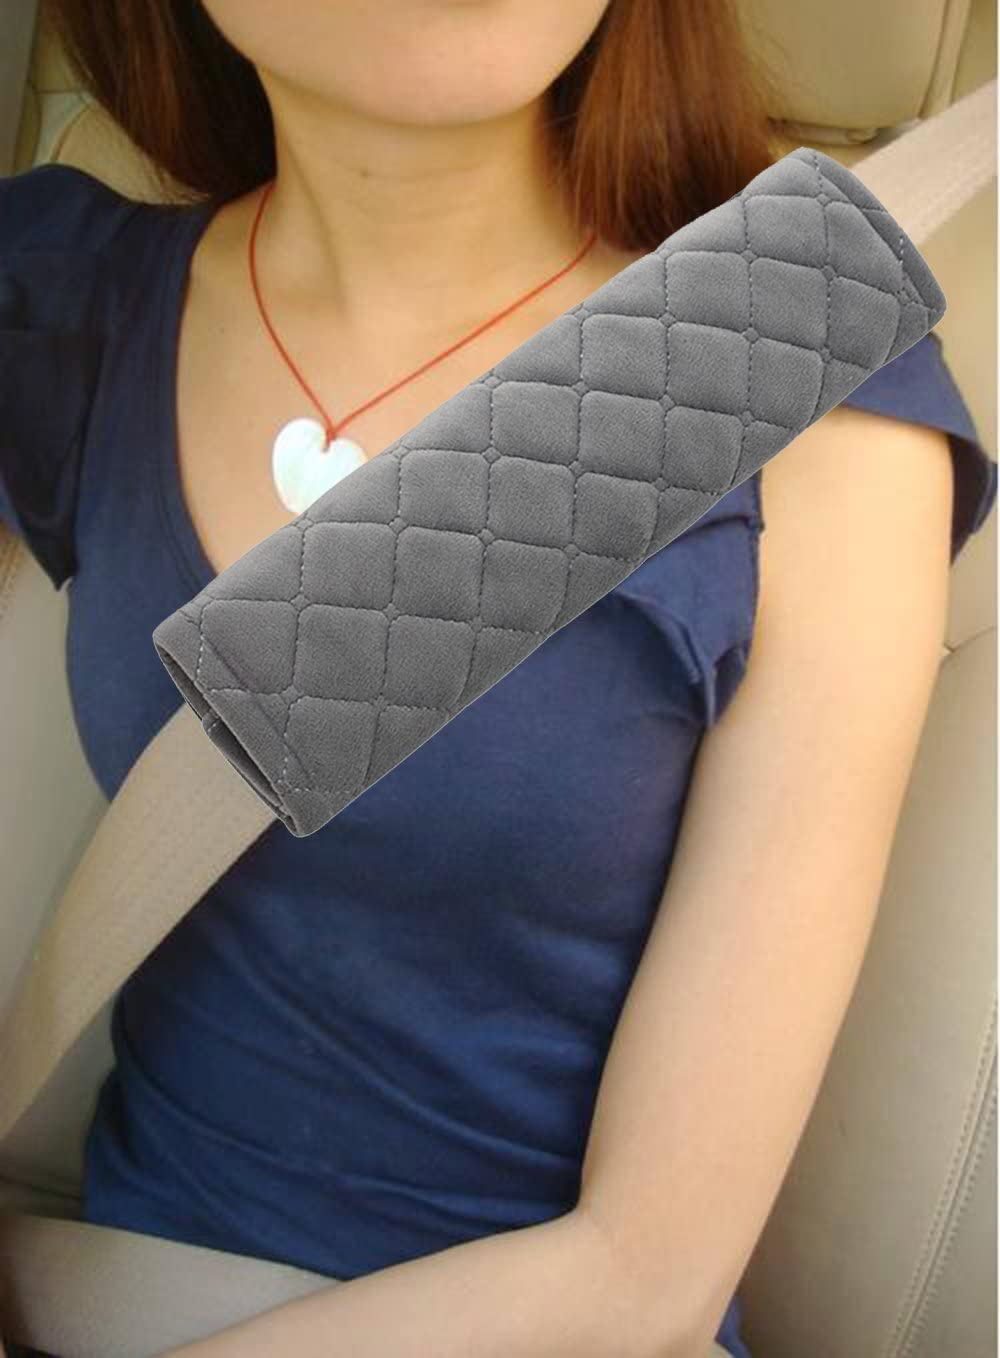 Forala 4pcs//Pack Car Seatbelt Pads Soft Faux Wool Plush Shoulder Strap Belt Covers Harness Protector for Cars//Bags//Cameras//Warm Winter Stress Relax for Your Neck Black